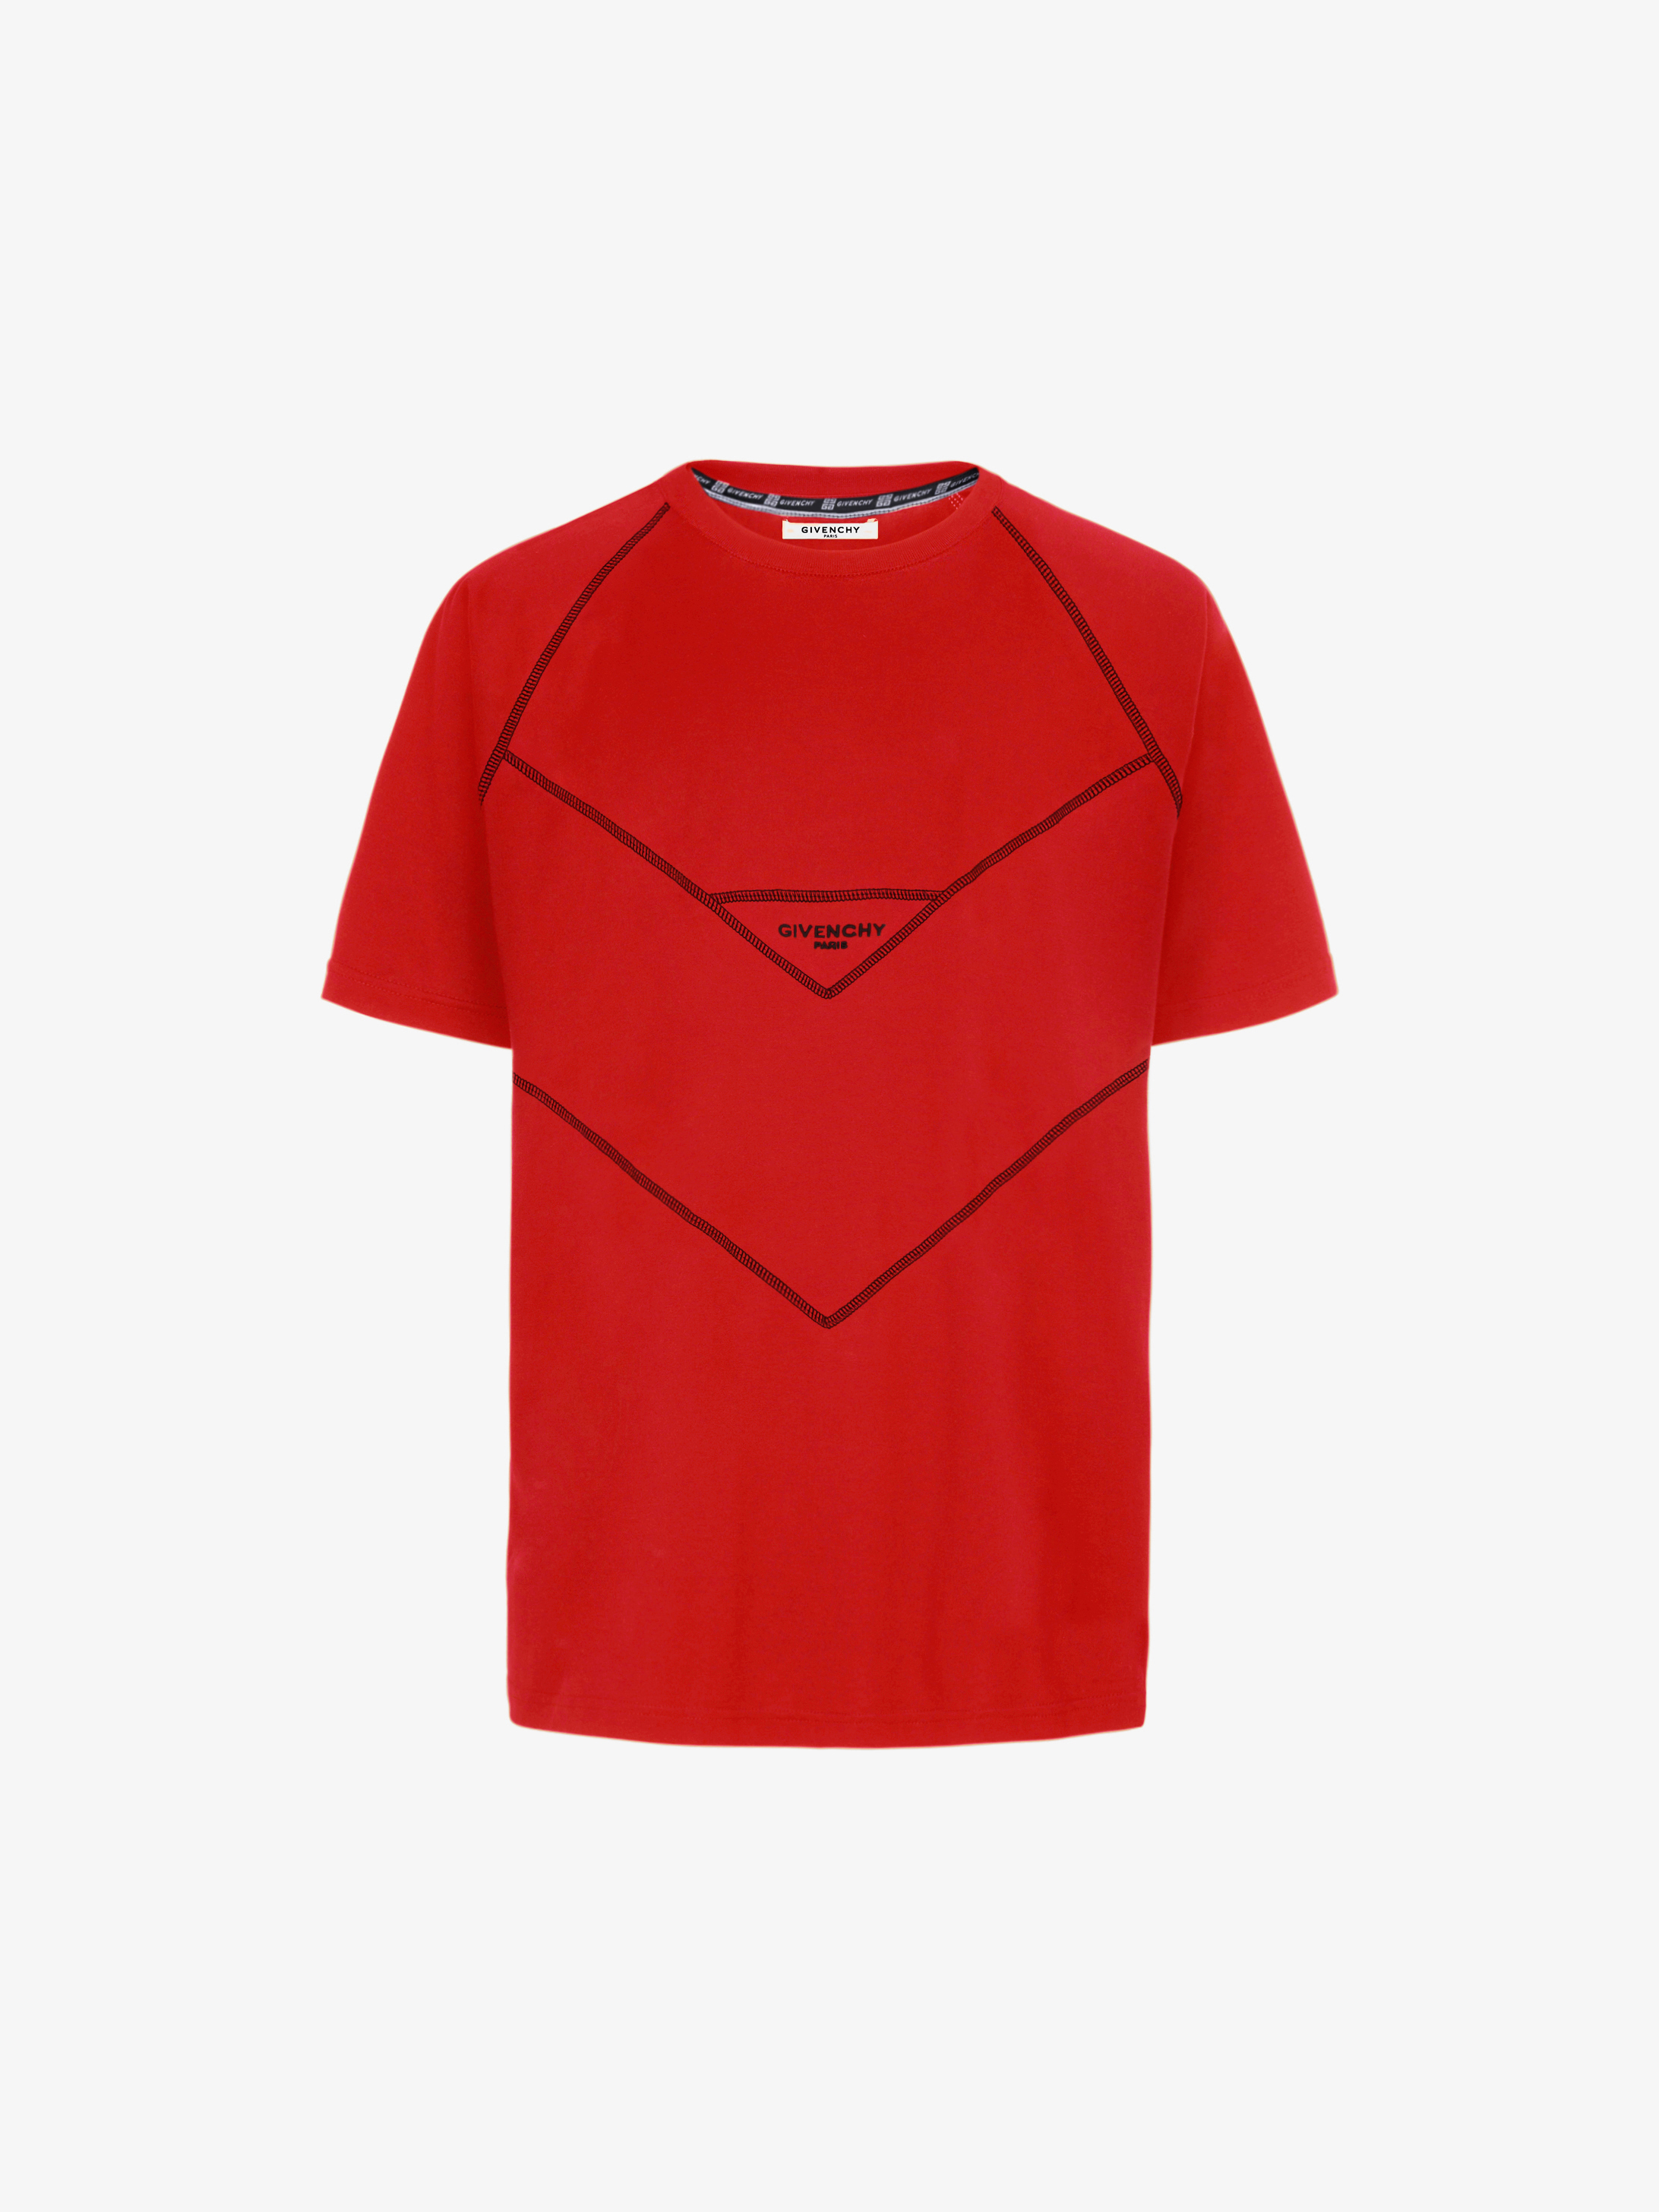 GIVENCHY PARIS contrasting stitching T-shirt